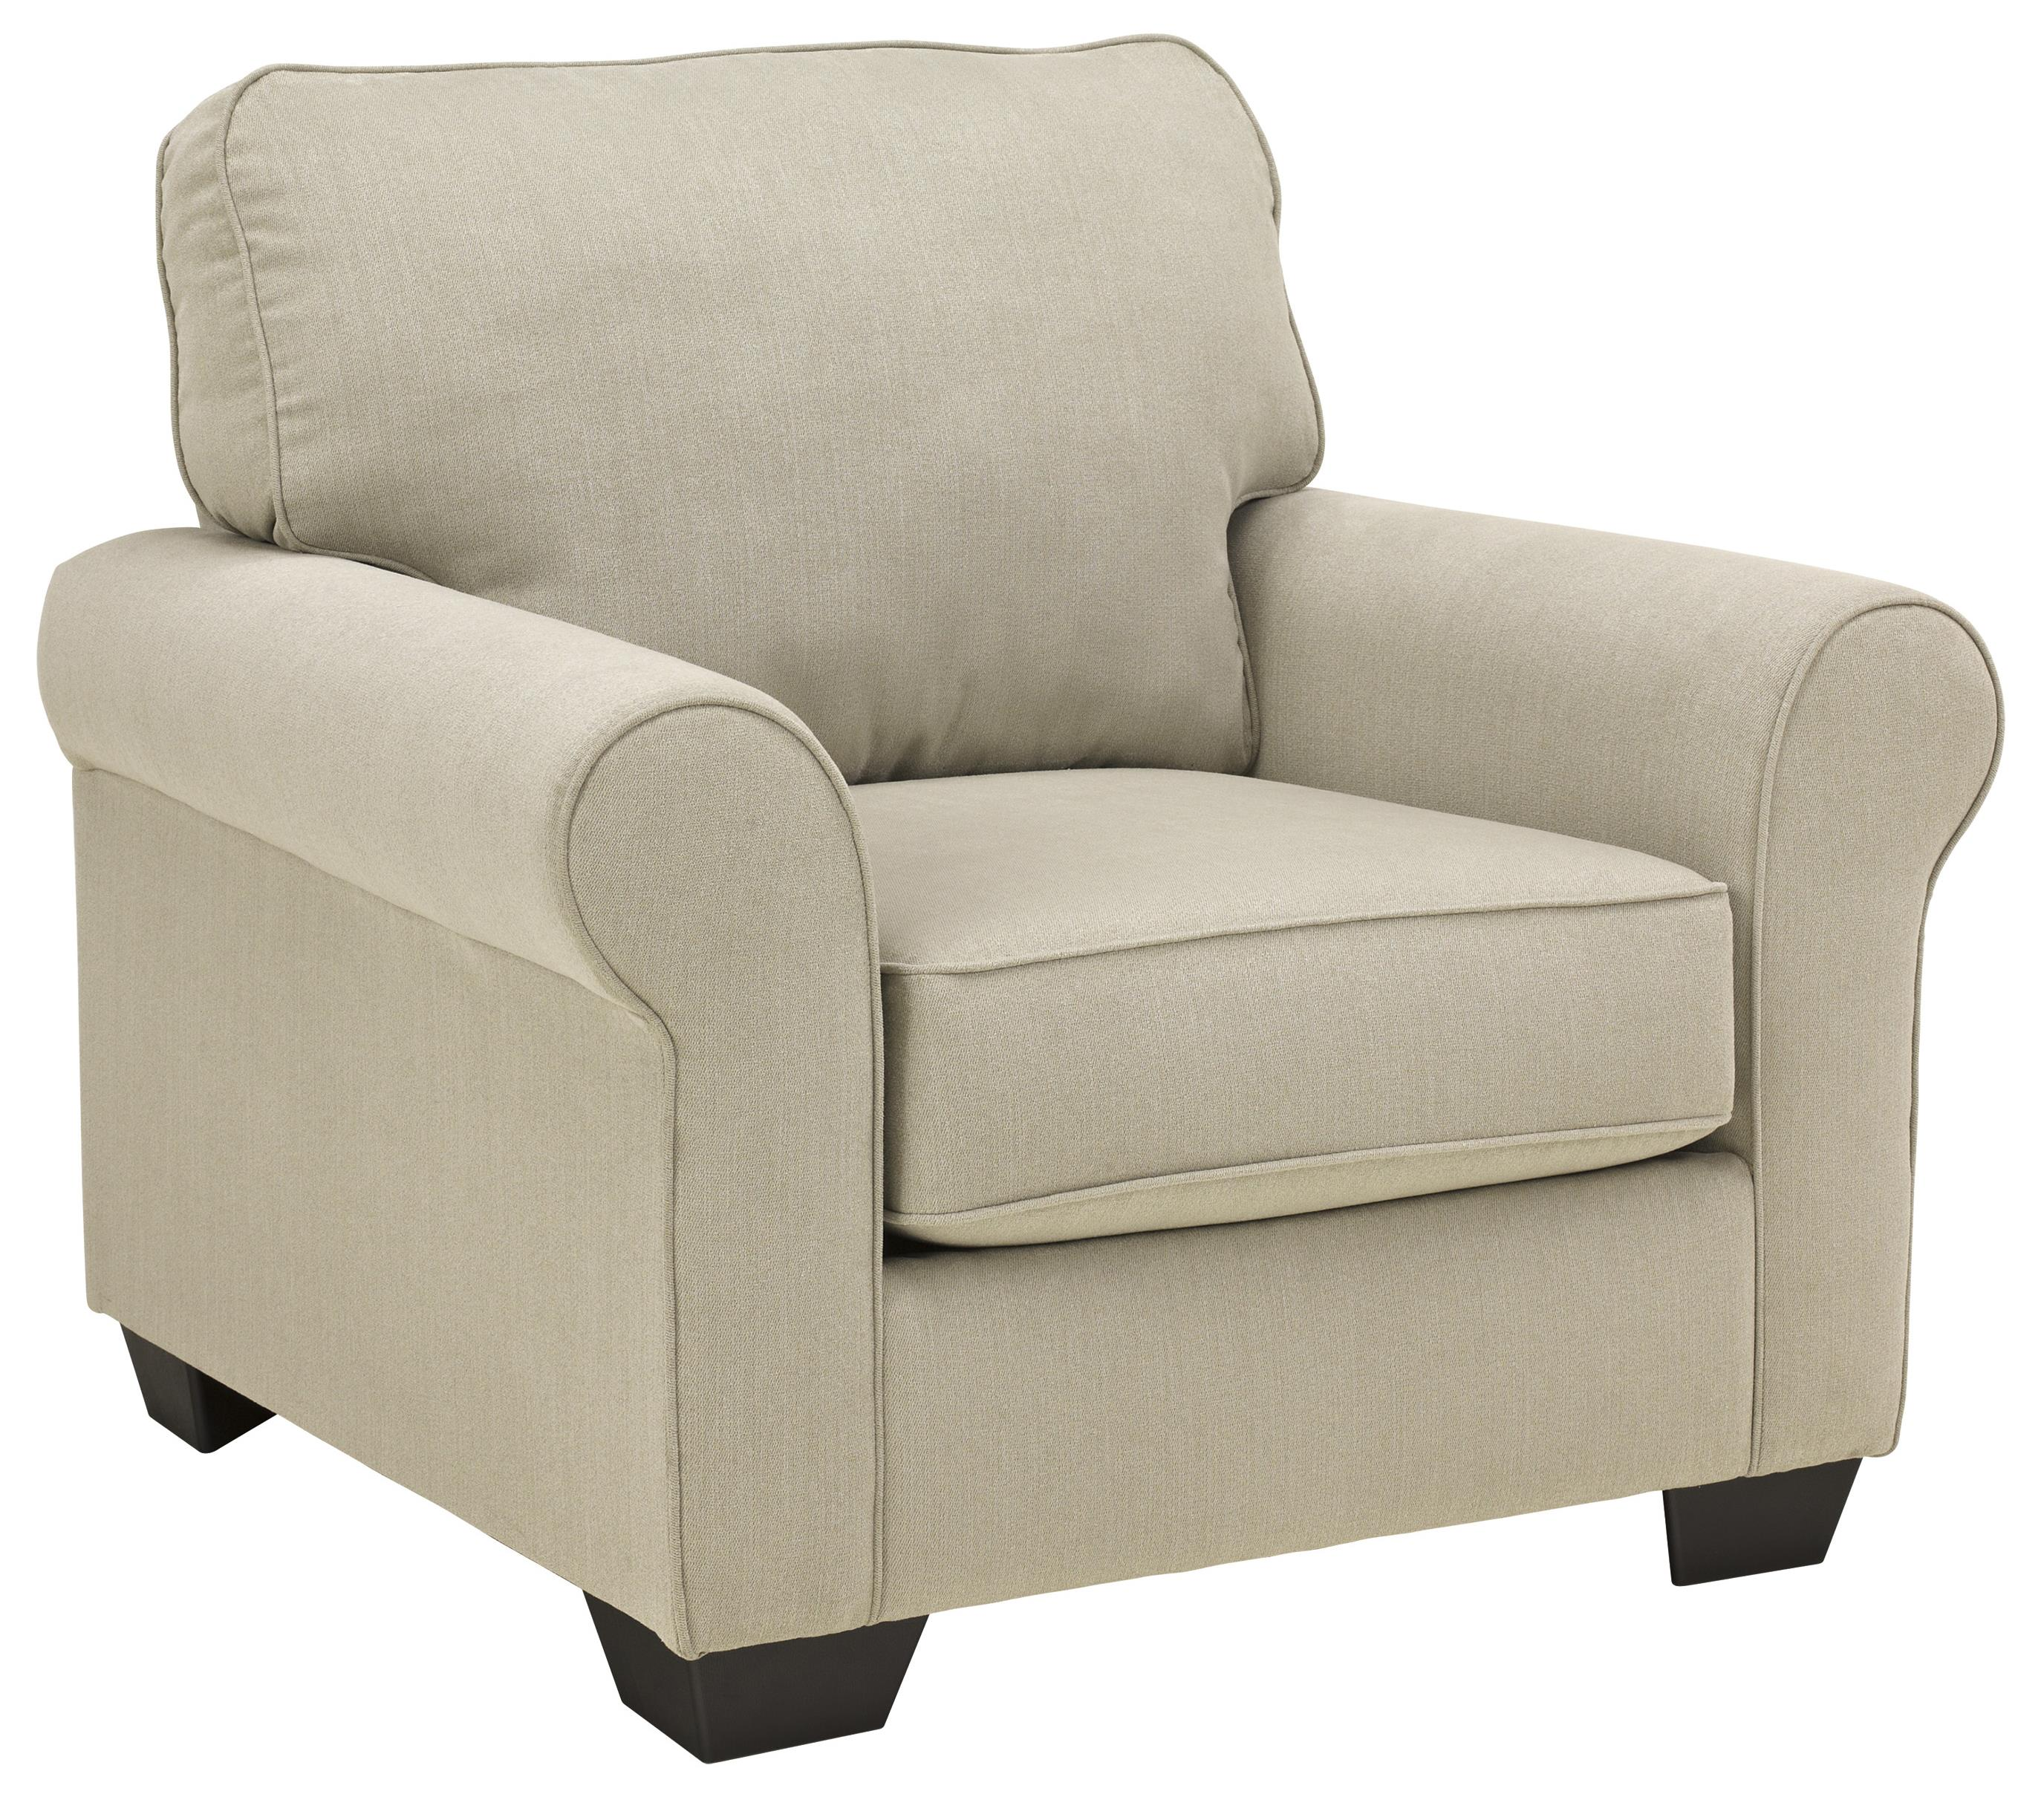 Ashley Furniture Caci Chair - Item Number: 8820220